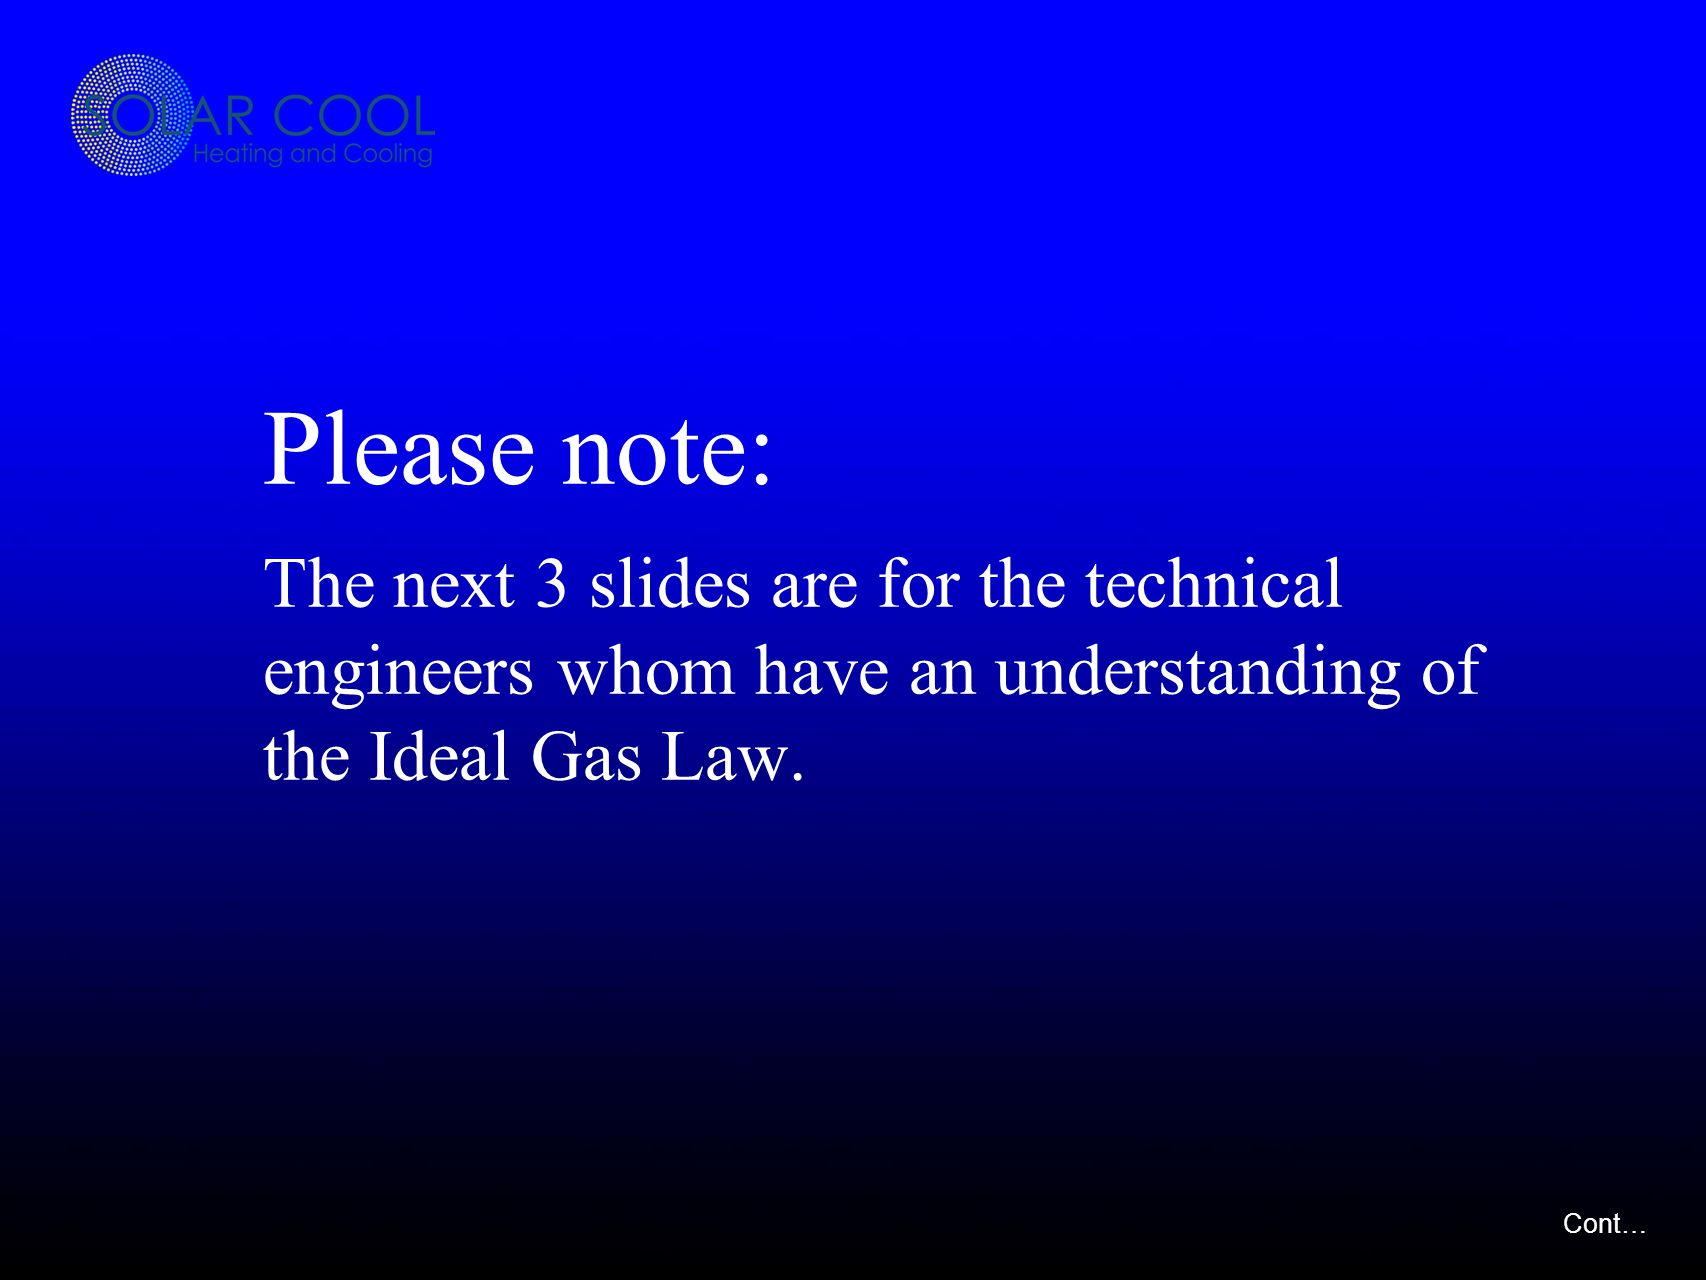 Please note: The next 3 slides are for the technical engineers whom have an understanding of the Ideal Gas Law.